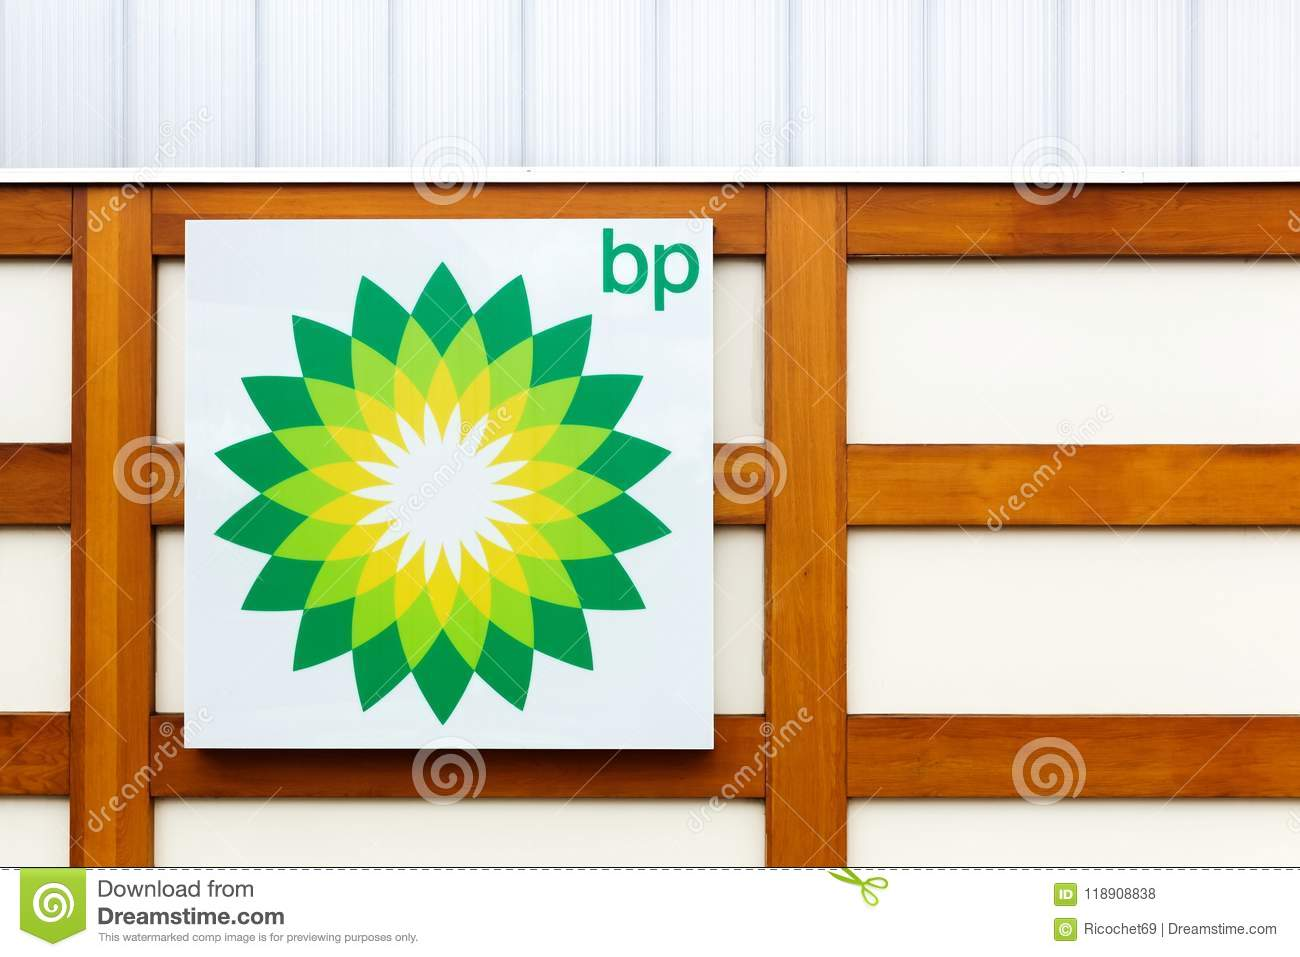 Bp Logo On A Wall Editorial Stock Photo Image Of England 118908838